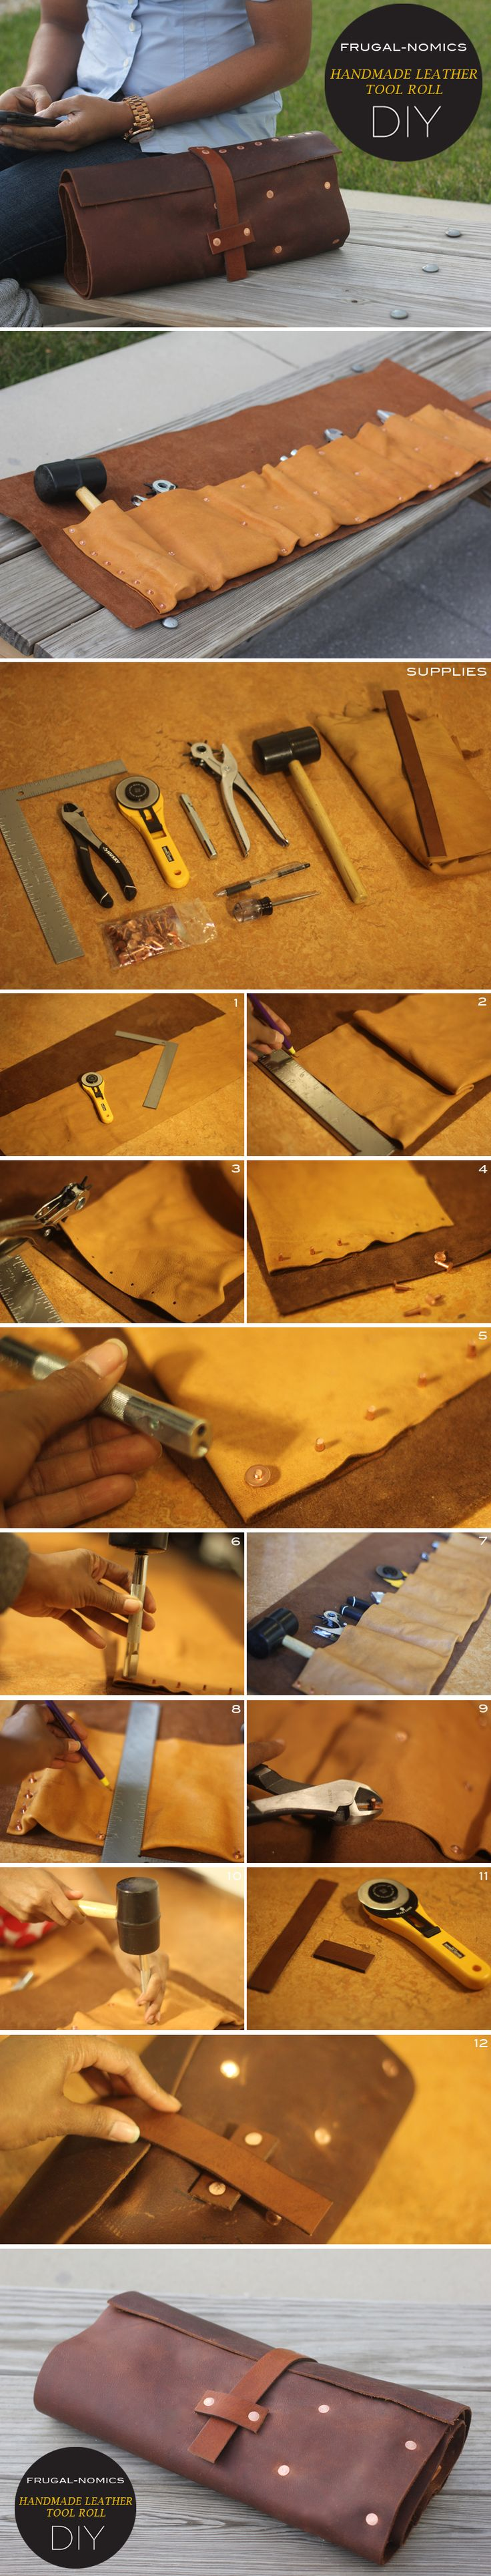 Frugal-nomics DIY : HANDMADE LEATHER TOOL ROLL | Frugal-nomics.com